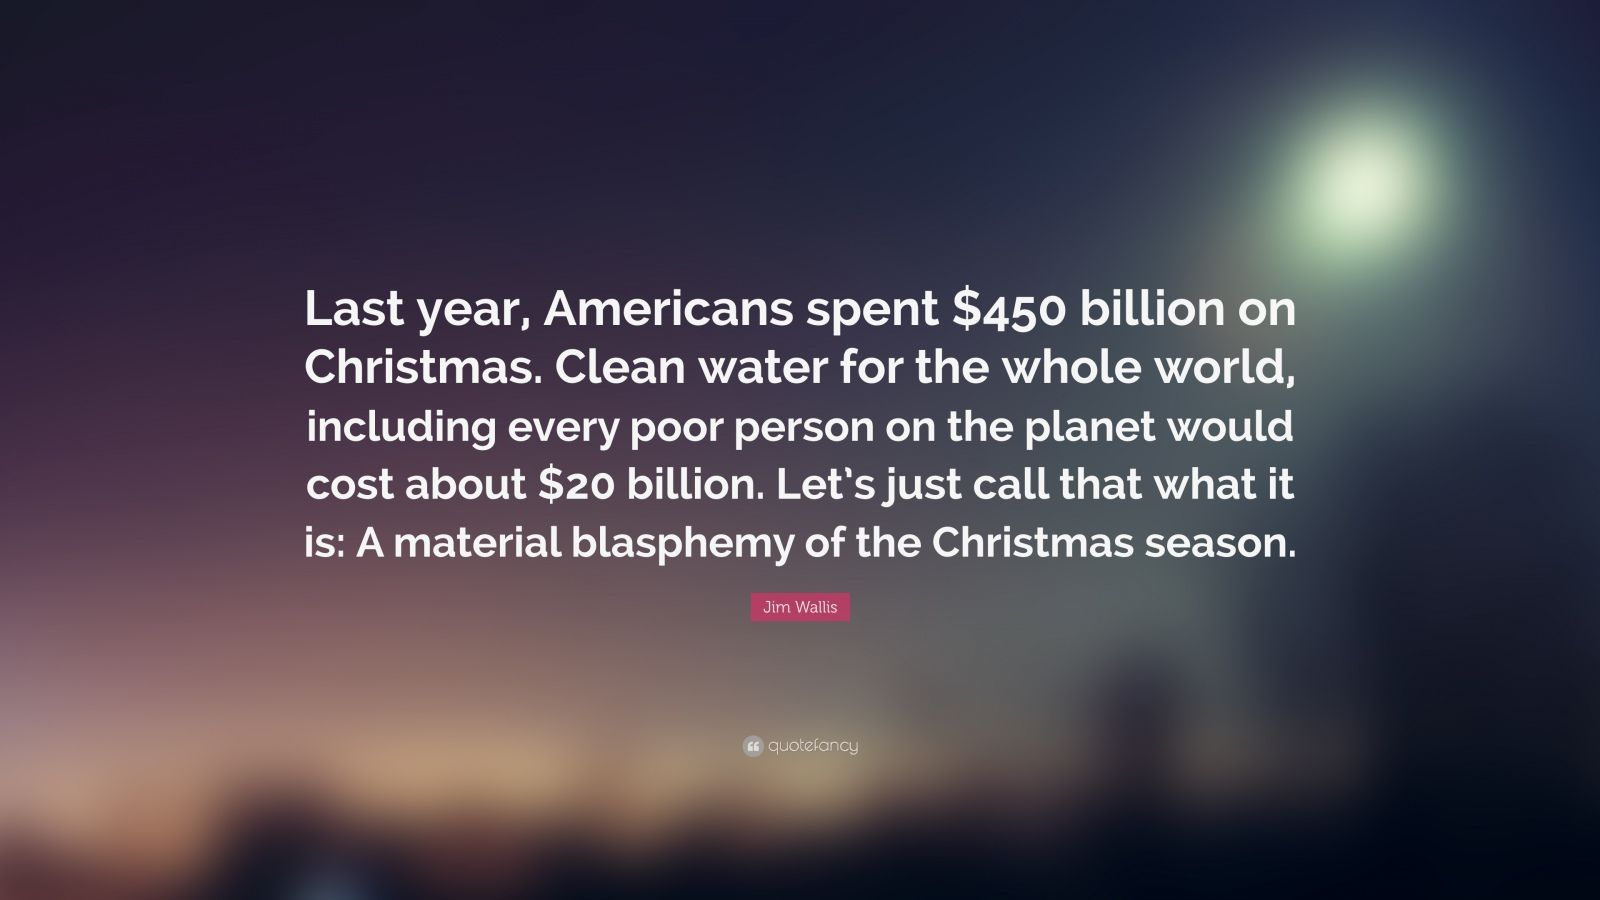 """Jim Wallis Quote: """"Last year, Americans spent $450 billion on Christmas. Clean water for the whole world, including every poor person on the planet would cost about $20 billion. Let's just call that what it is: A material blasphemy of the Christmas season."""""""